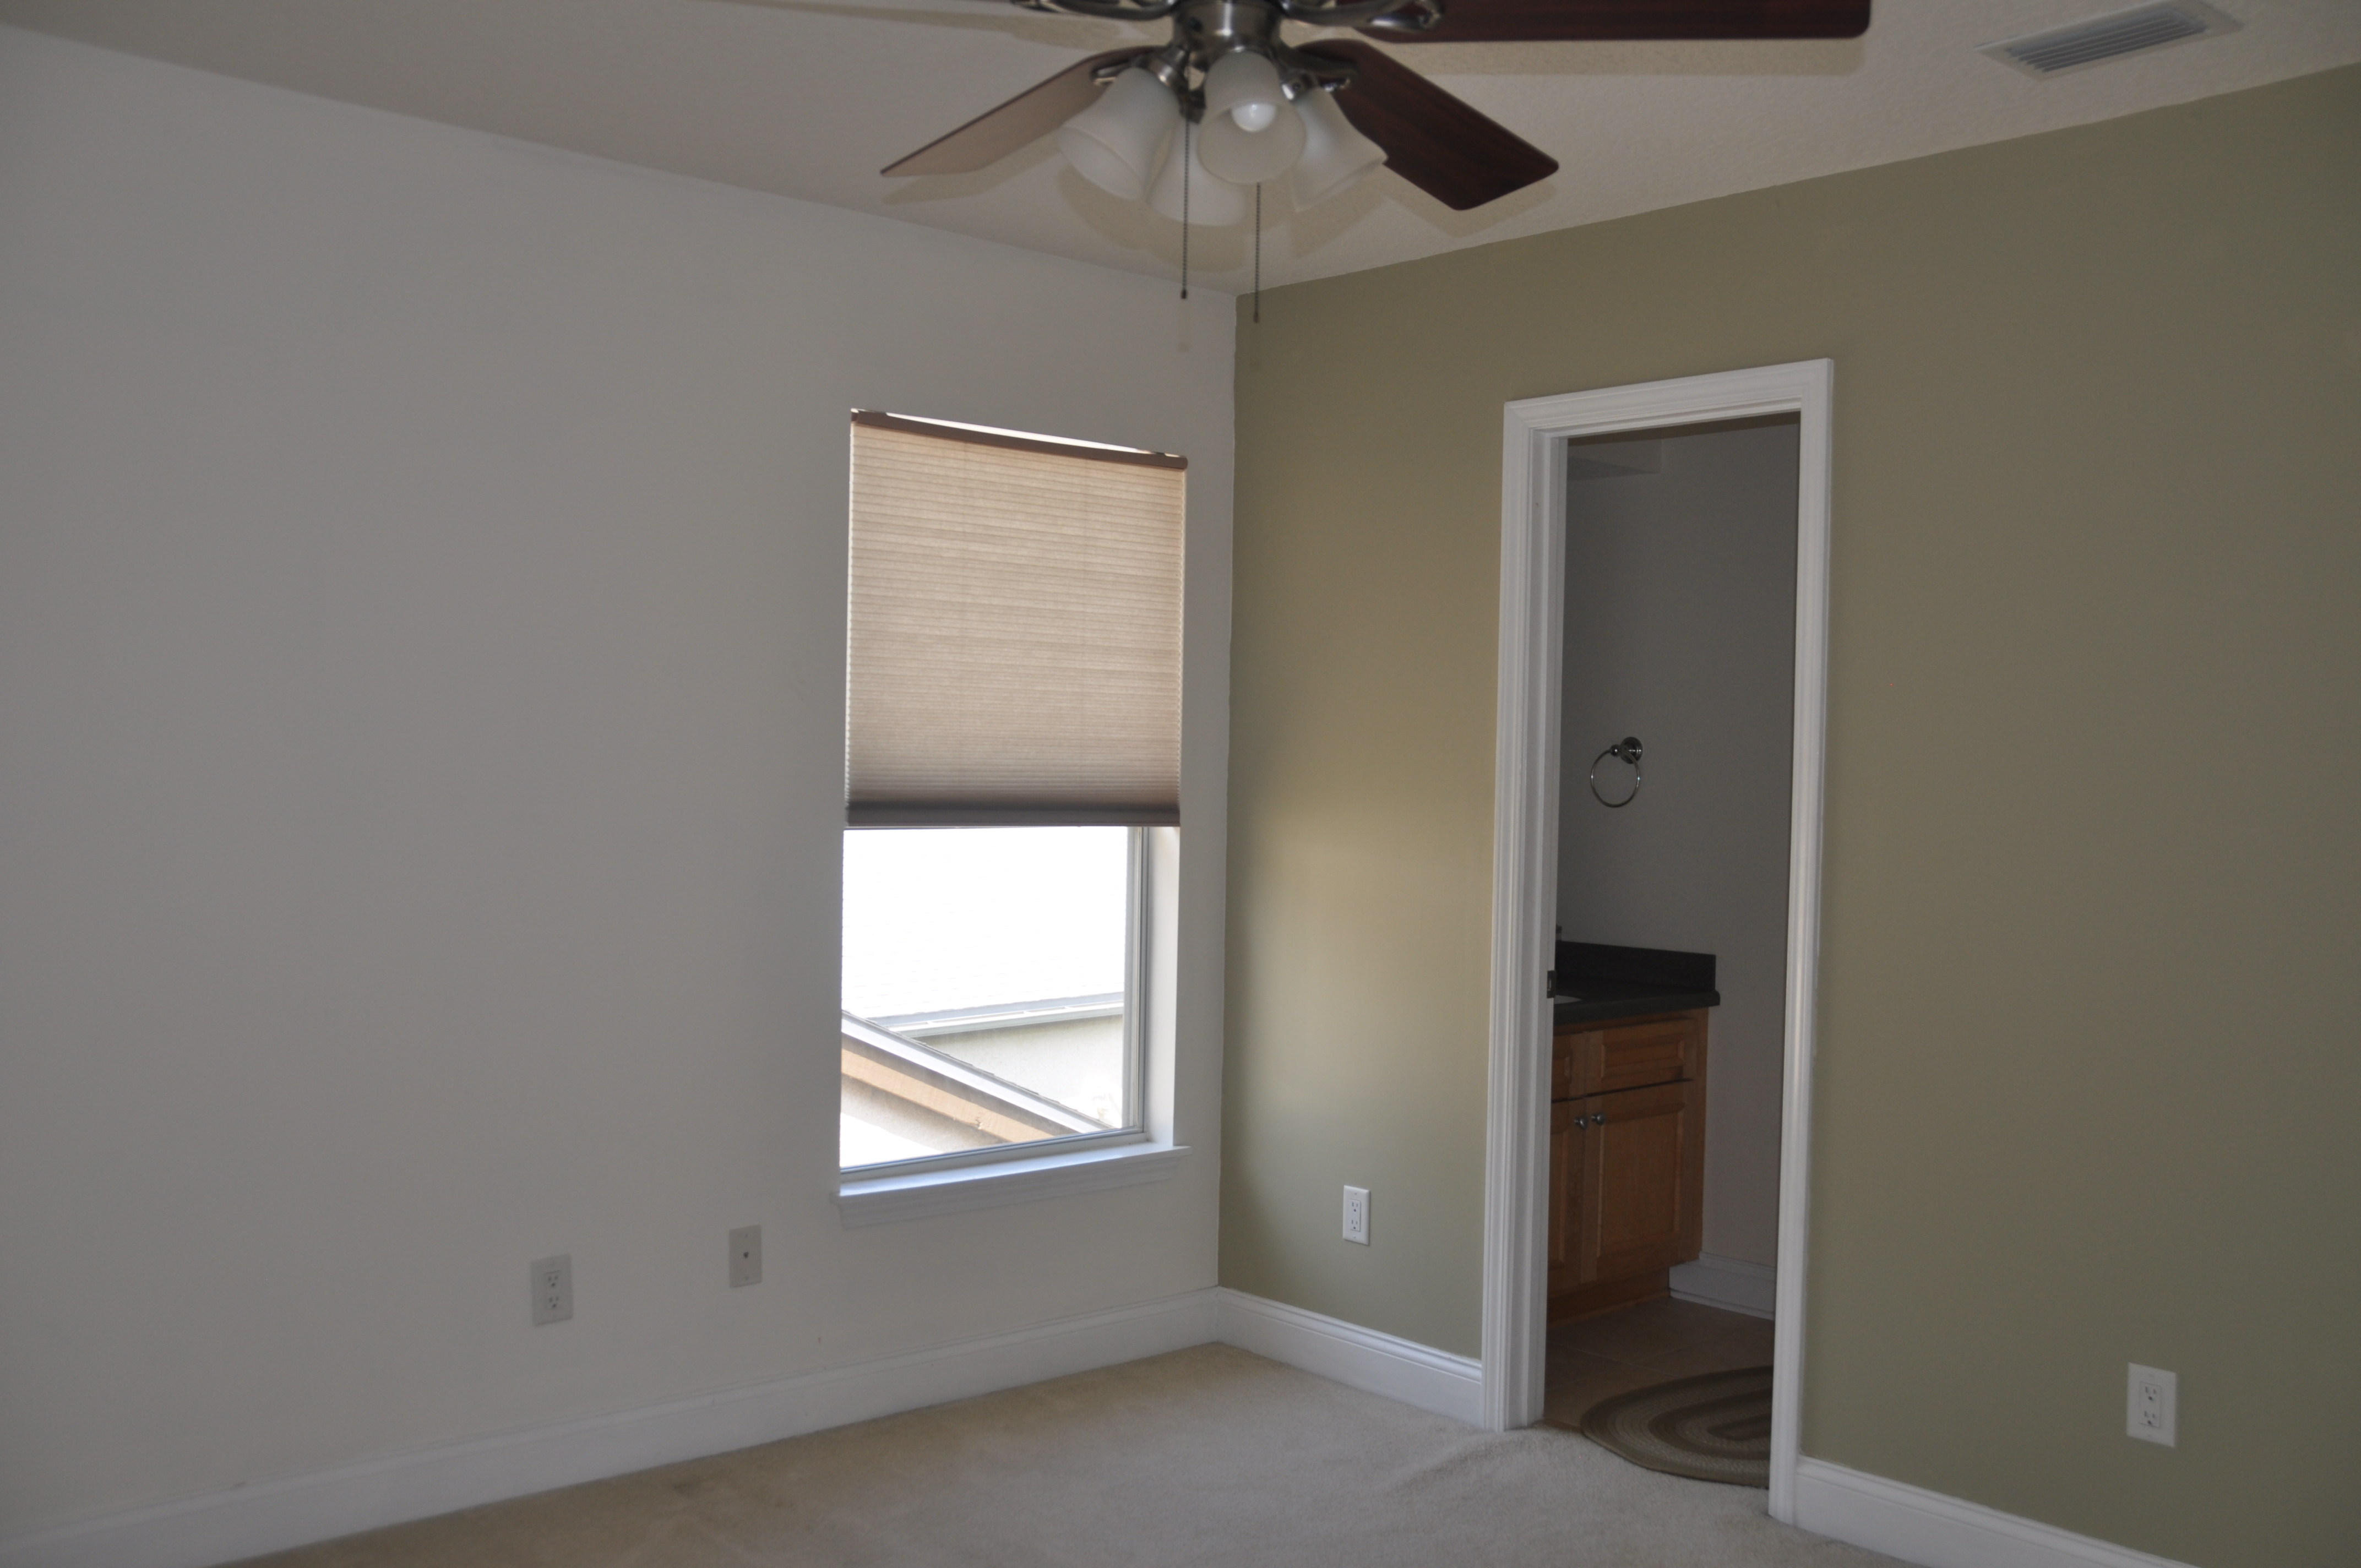 UPSTAIRS ROOM 2 VIEW 2